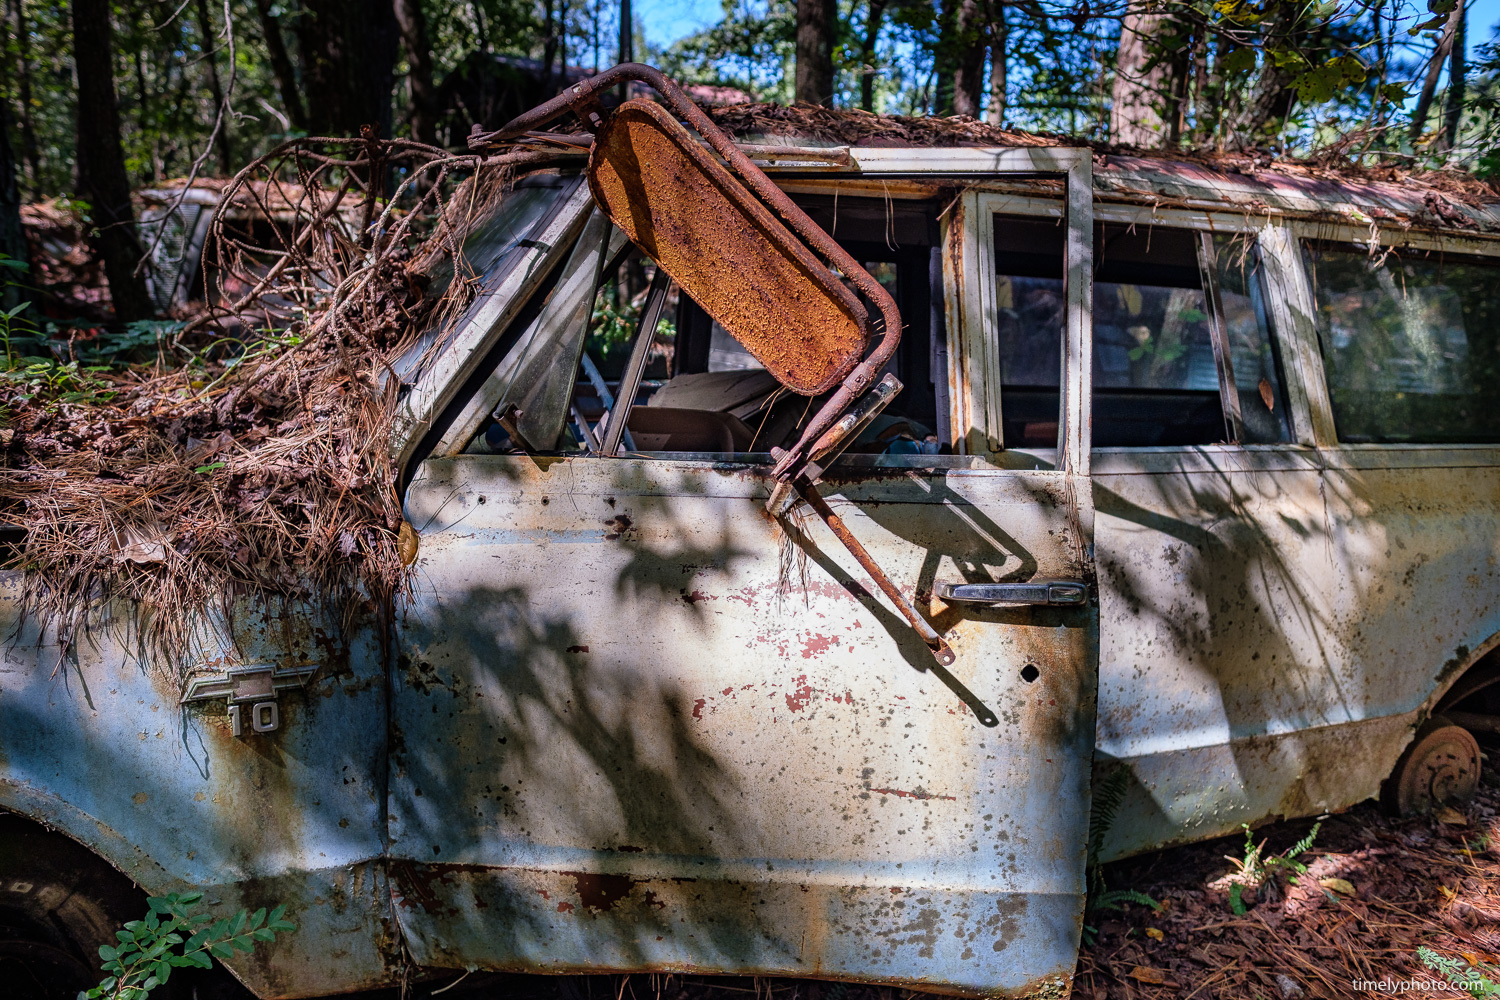 Rust. Part of the Americana series by Chris Lee